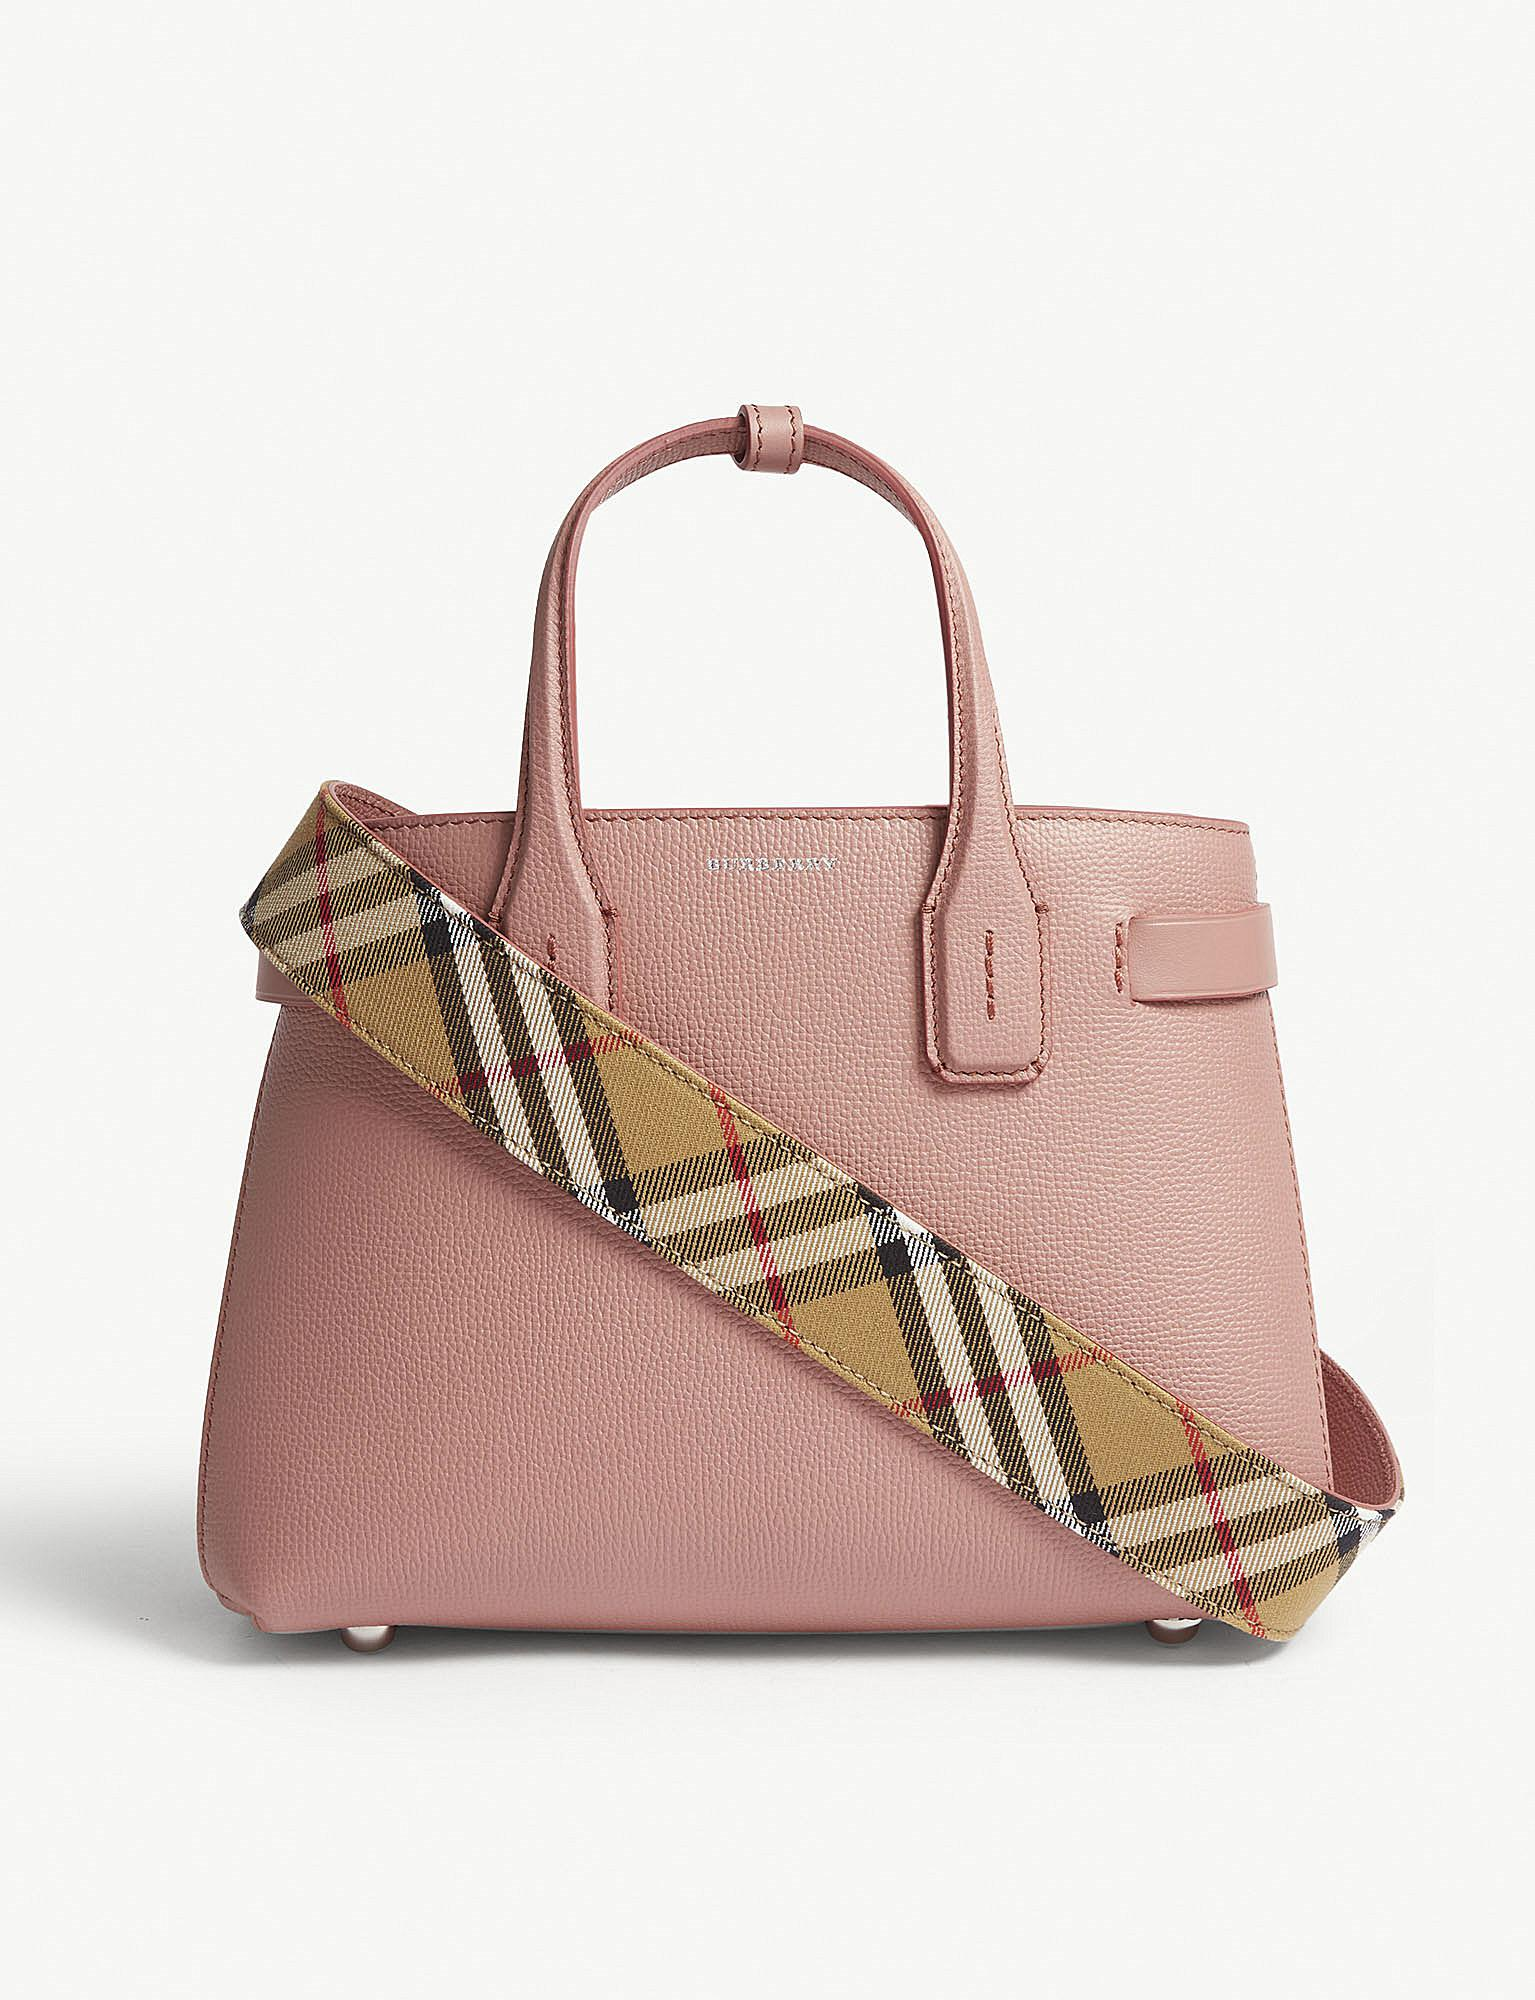 Burberry. Women s Dusty Rose Pink Check New Banner Small Grained Leather  Tote Bag 0ada3d820cf5b